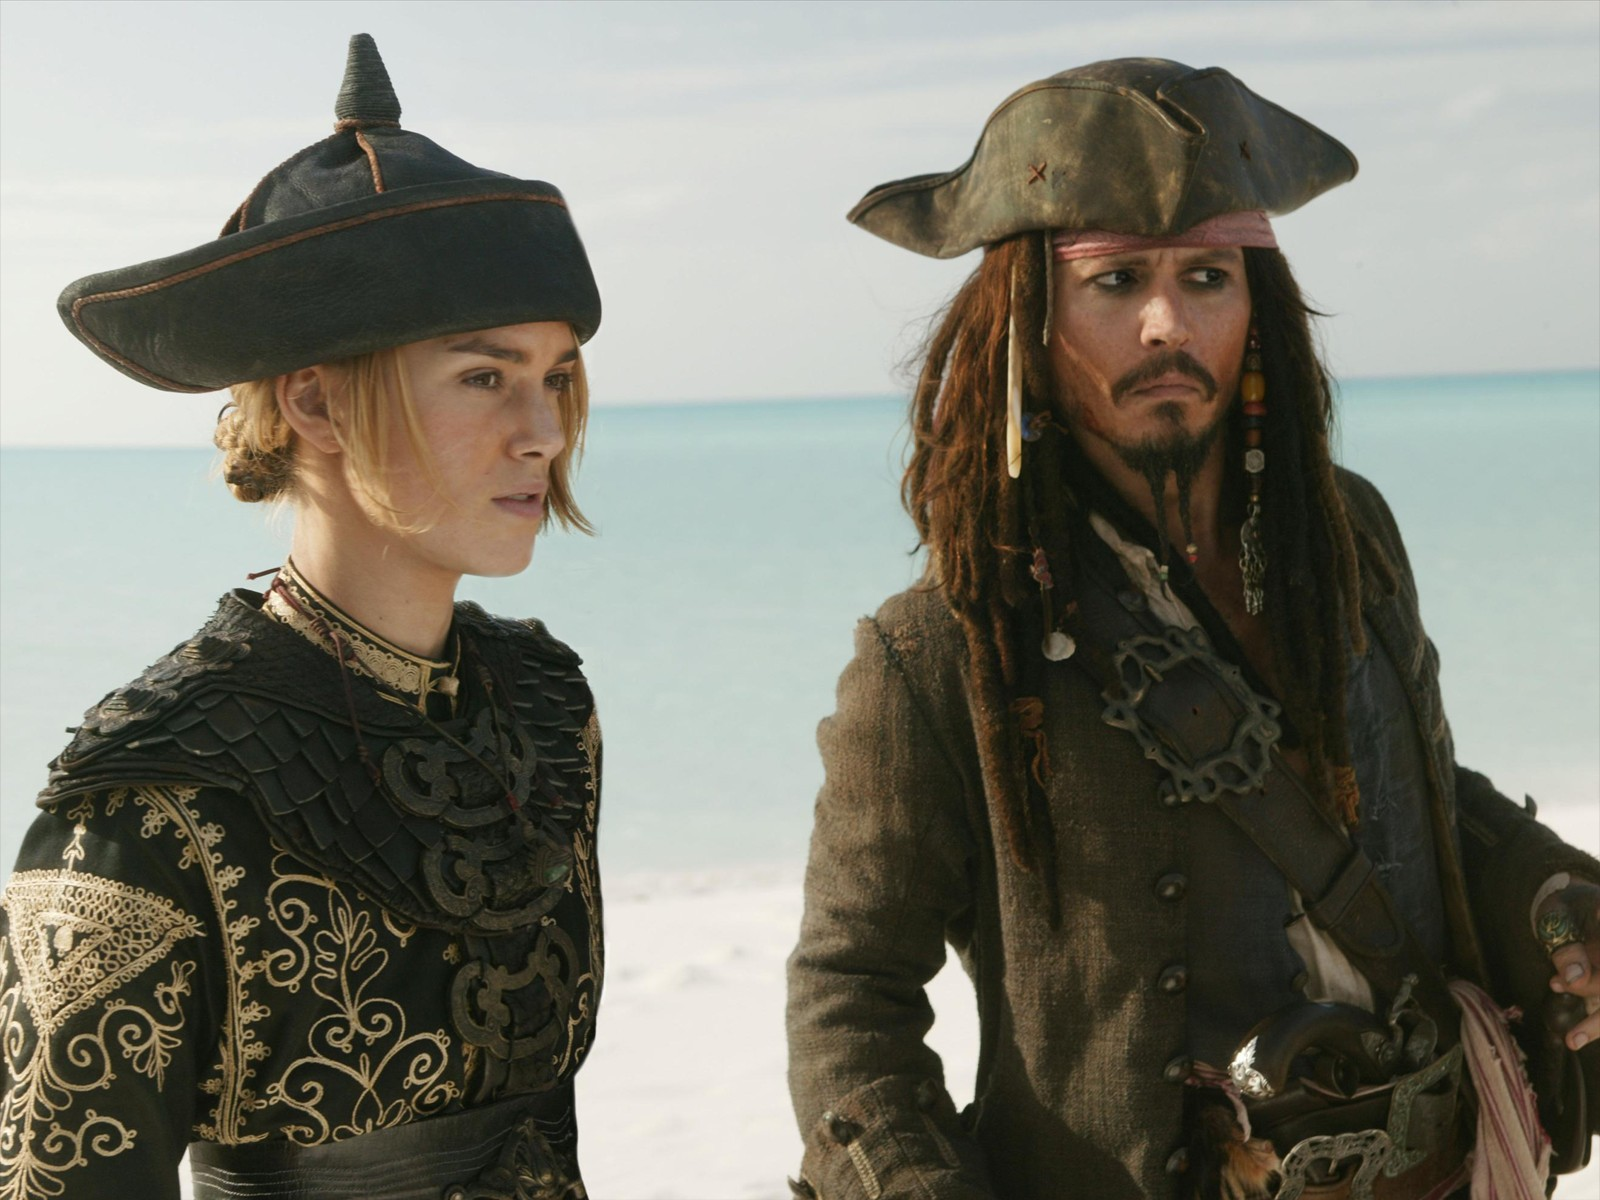 The Pirate Filme The Film Pirates Of The Caribbean Wallpapers And Images